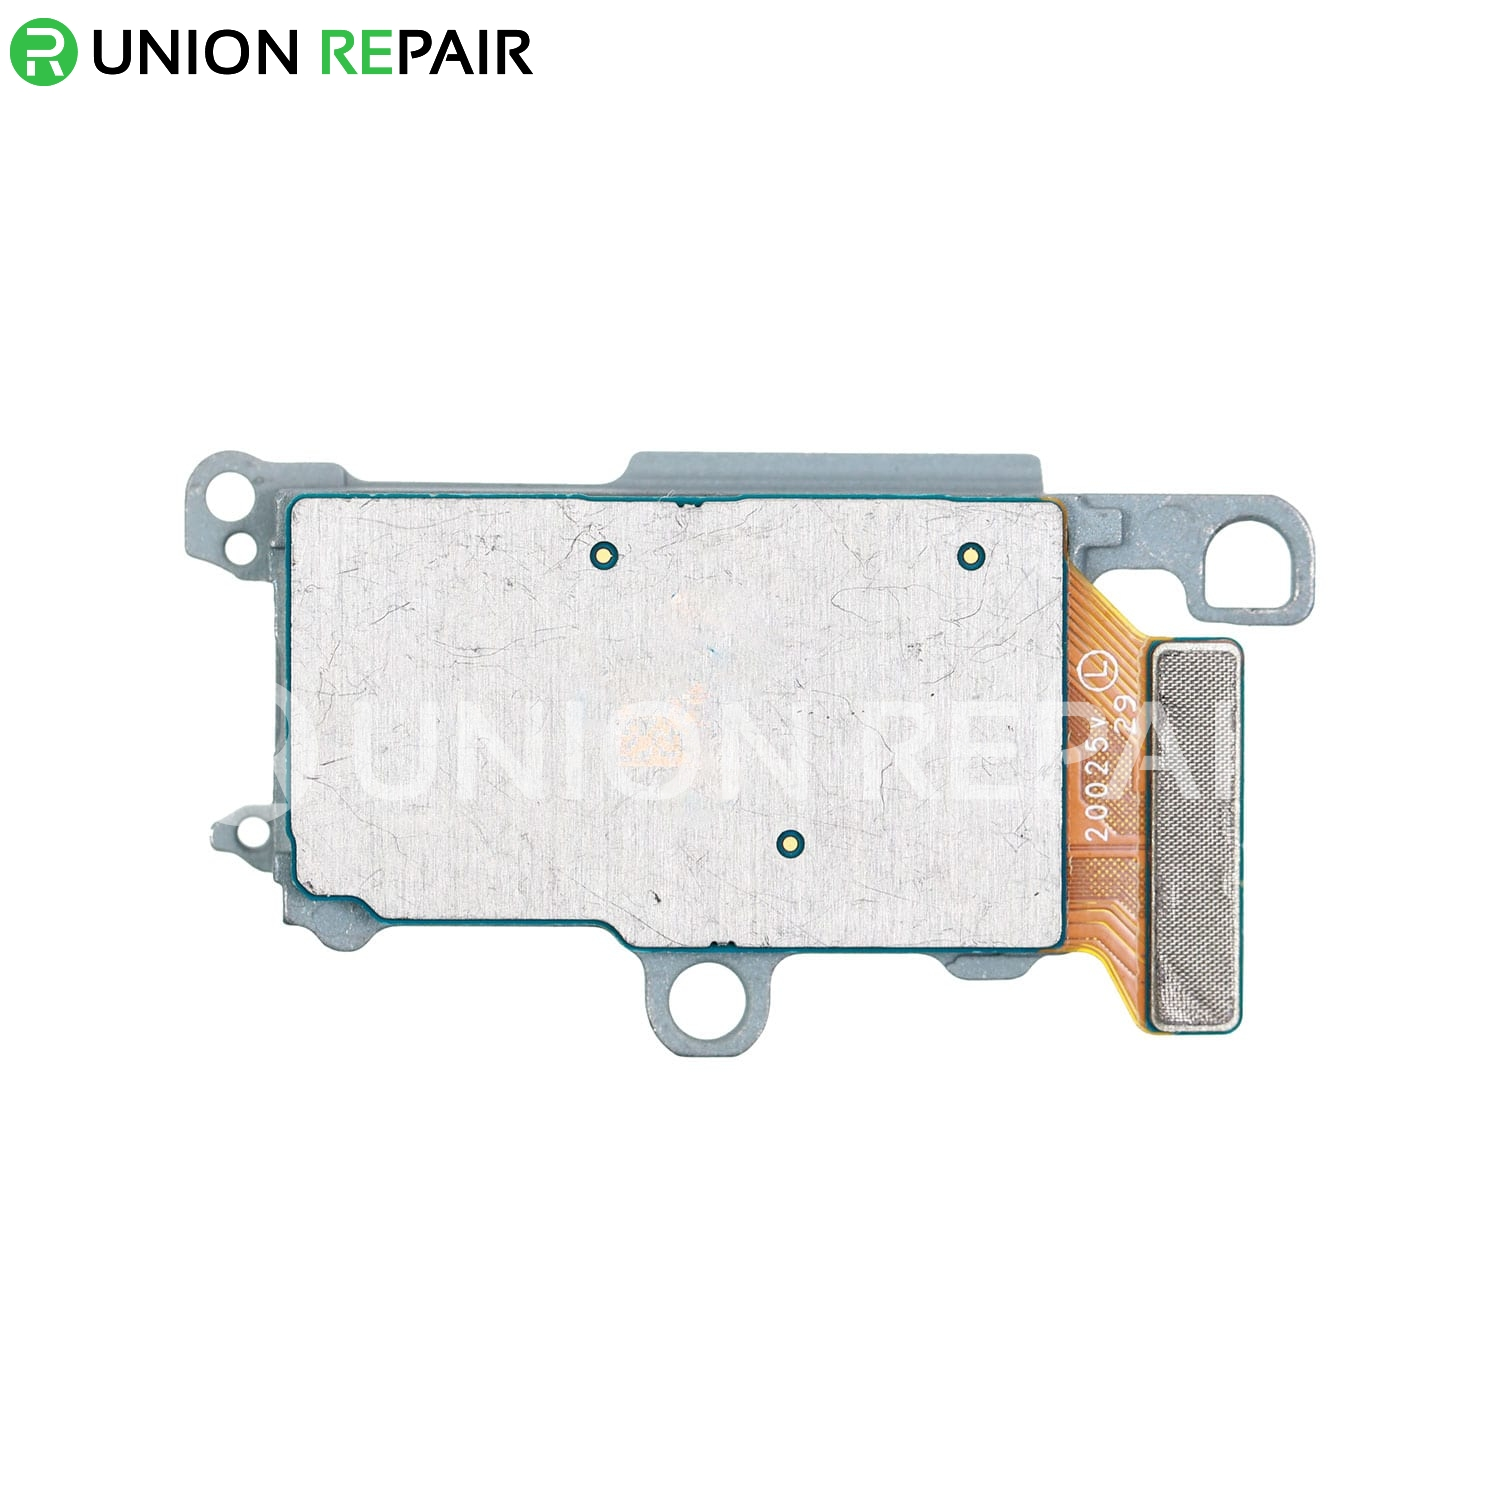 Replacement for Samsung Galaxy S20 Rear Camera